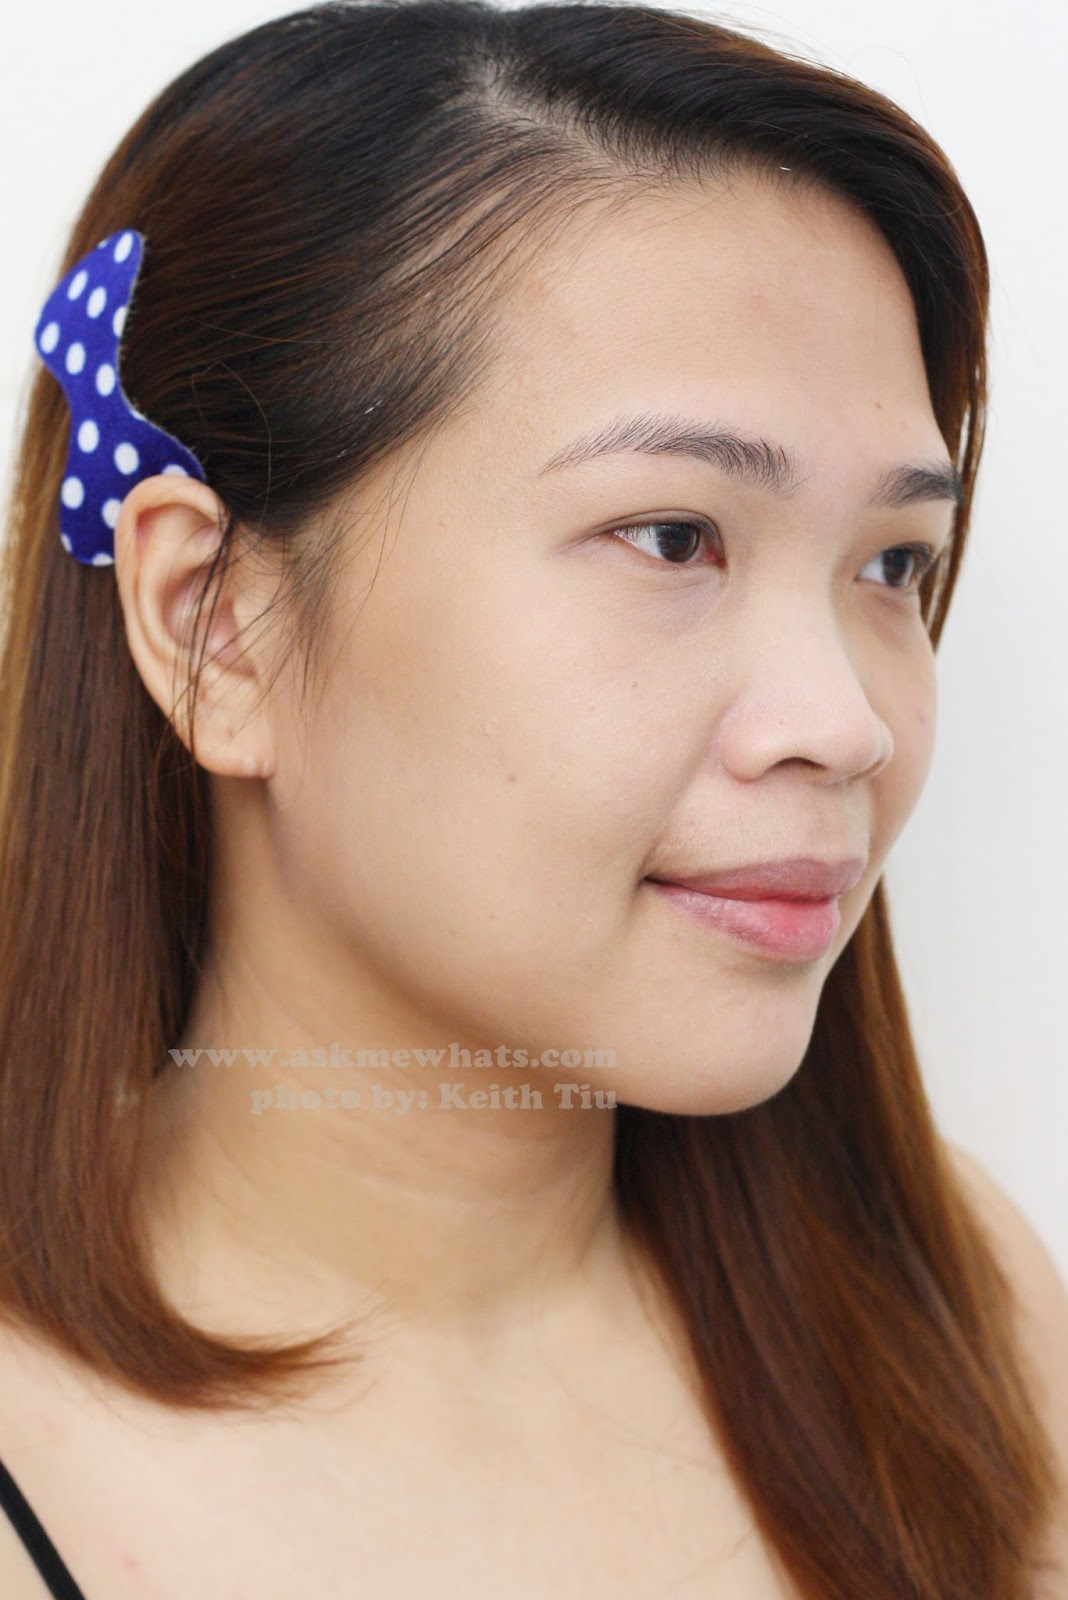 Askmewhats Top Beauty Blogger Philippines Skincare Makeup Review Etude House Cc Cream A Photo Of Correct Care Silky On Girl